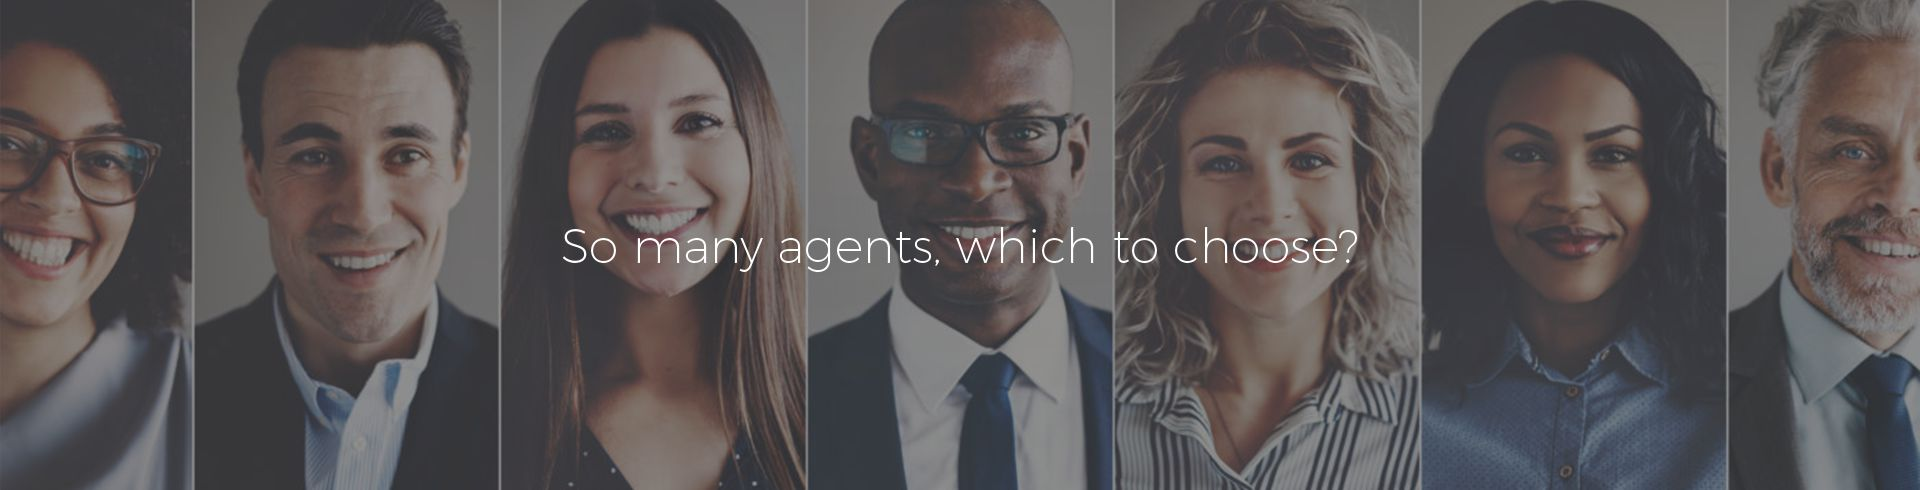 So Many Agents. Which to choose?